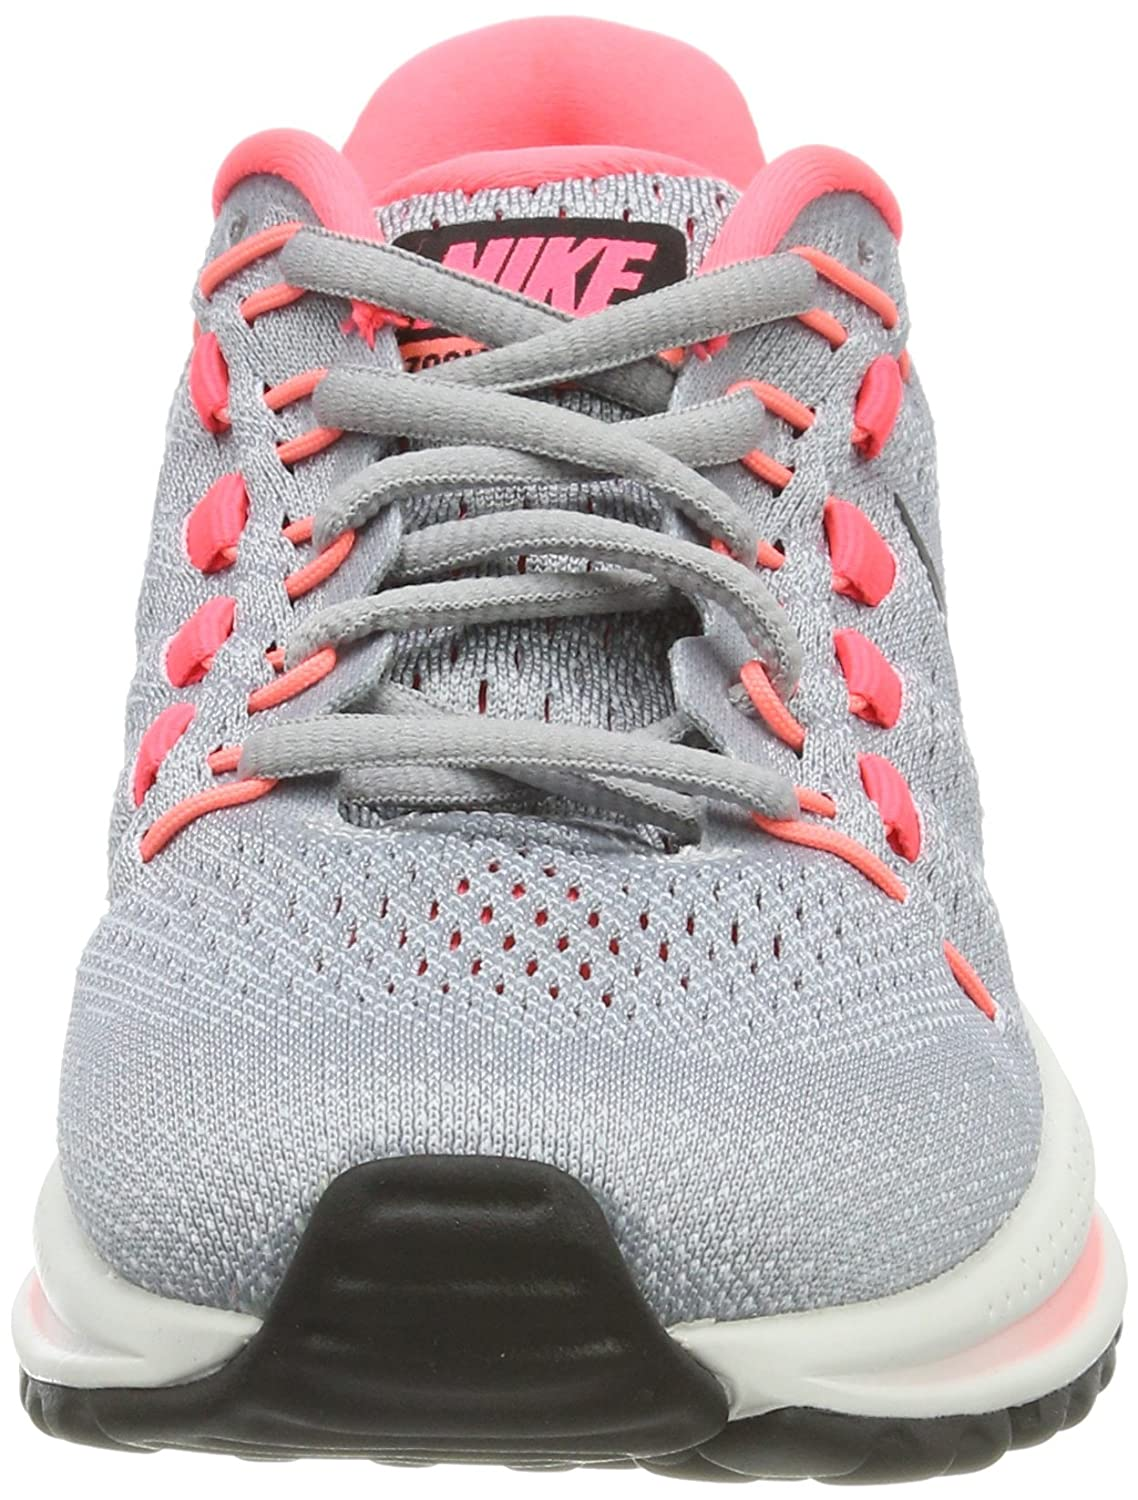 Nike W Punch Air Zoom Vomero 12 Platinum/Hot (N) Mujer Zapatillas